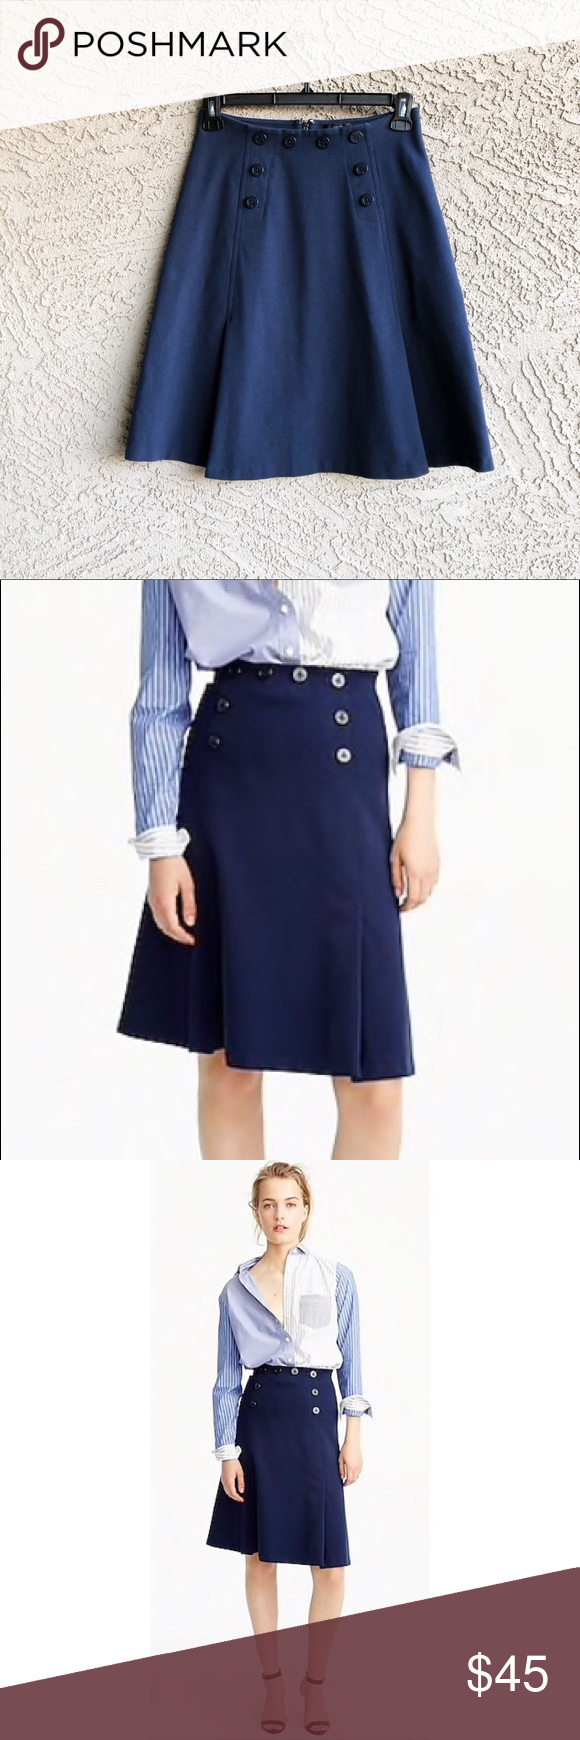 302c92a7c J. CREW Sailor Skirt In Ponte Navy Nautical Skirt Navy nautical button front  A-line skirt in excellent condition. ✨OFFERS WELCOME✨ J. Crew Skirts A-Line  ...